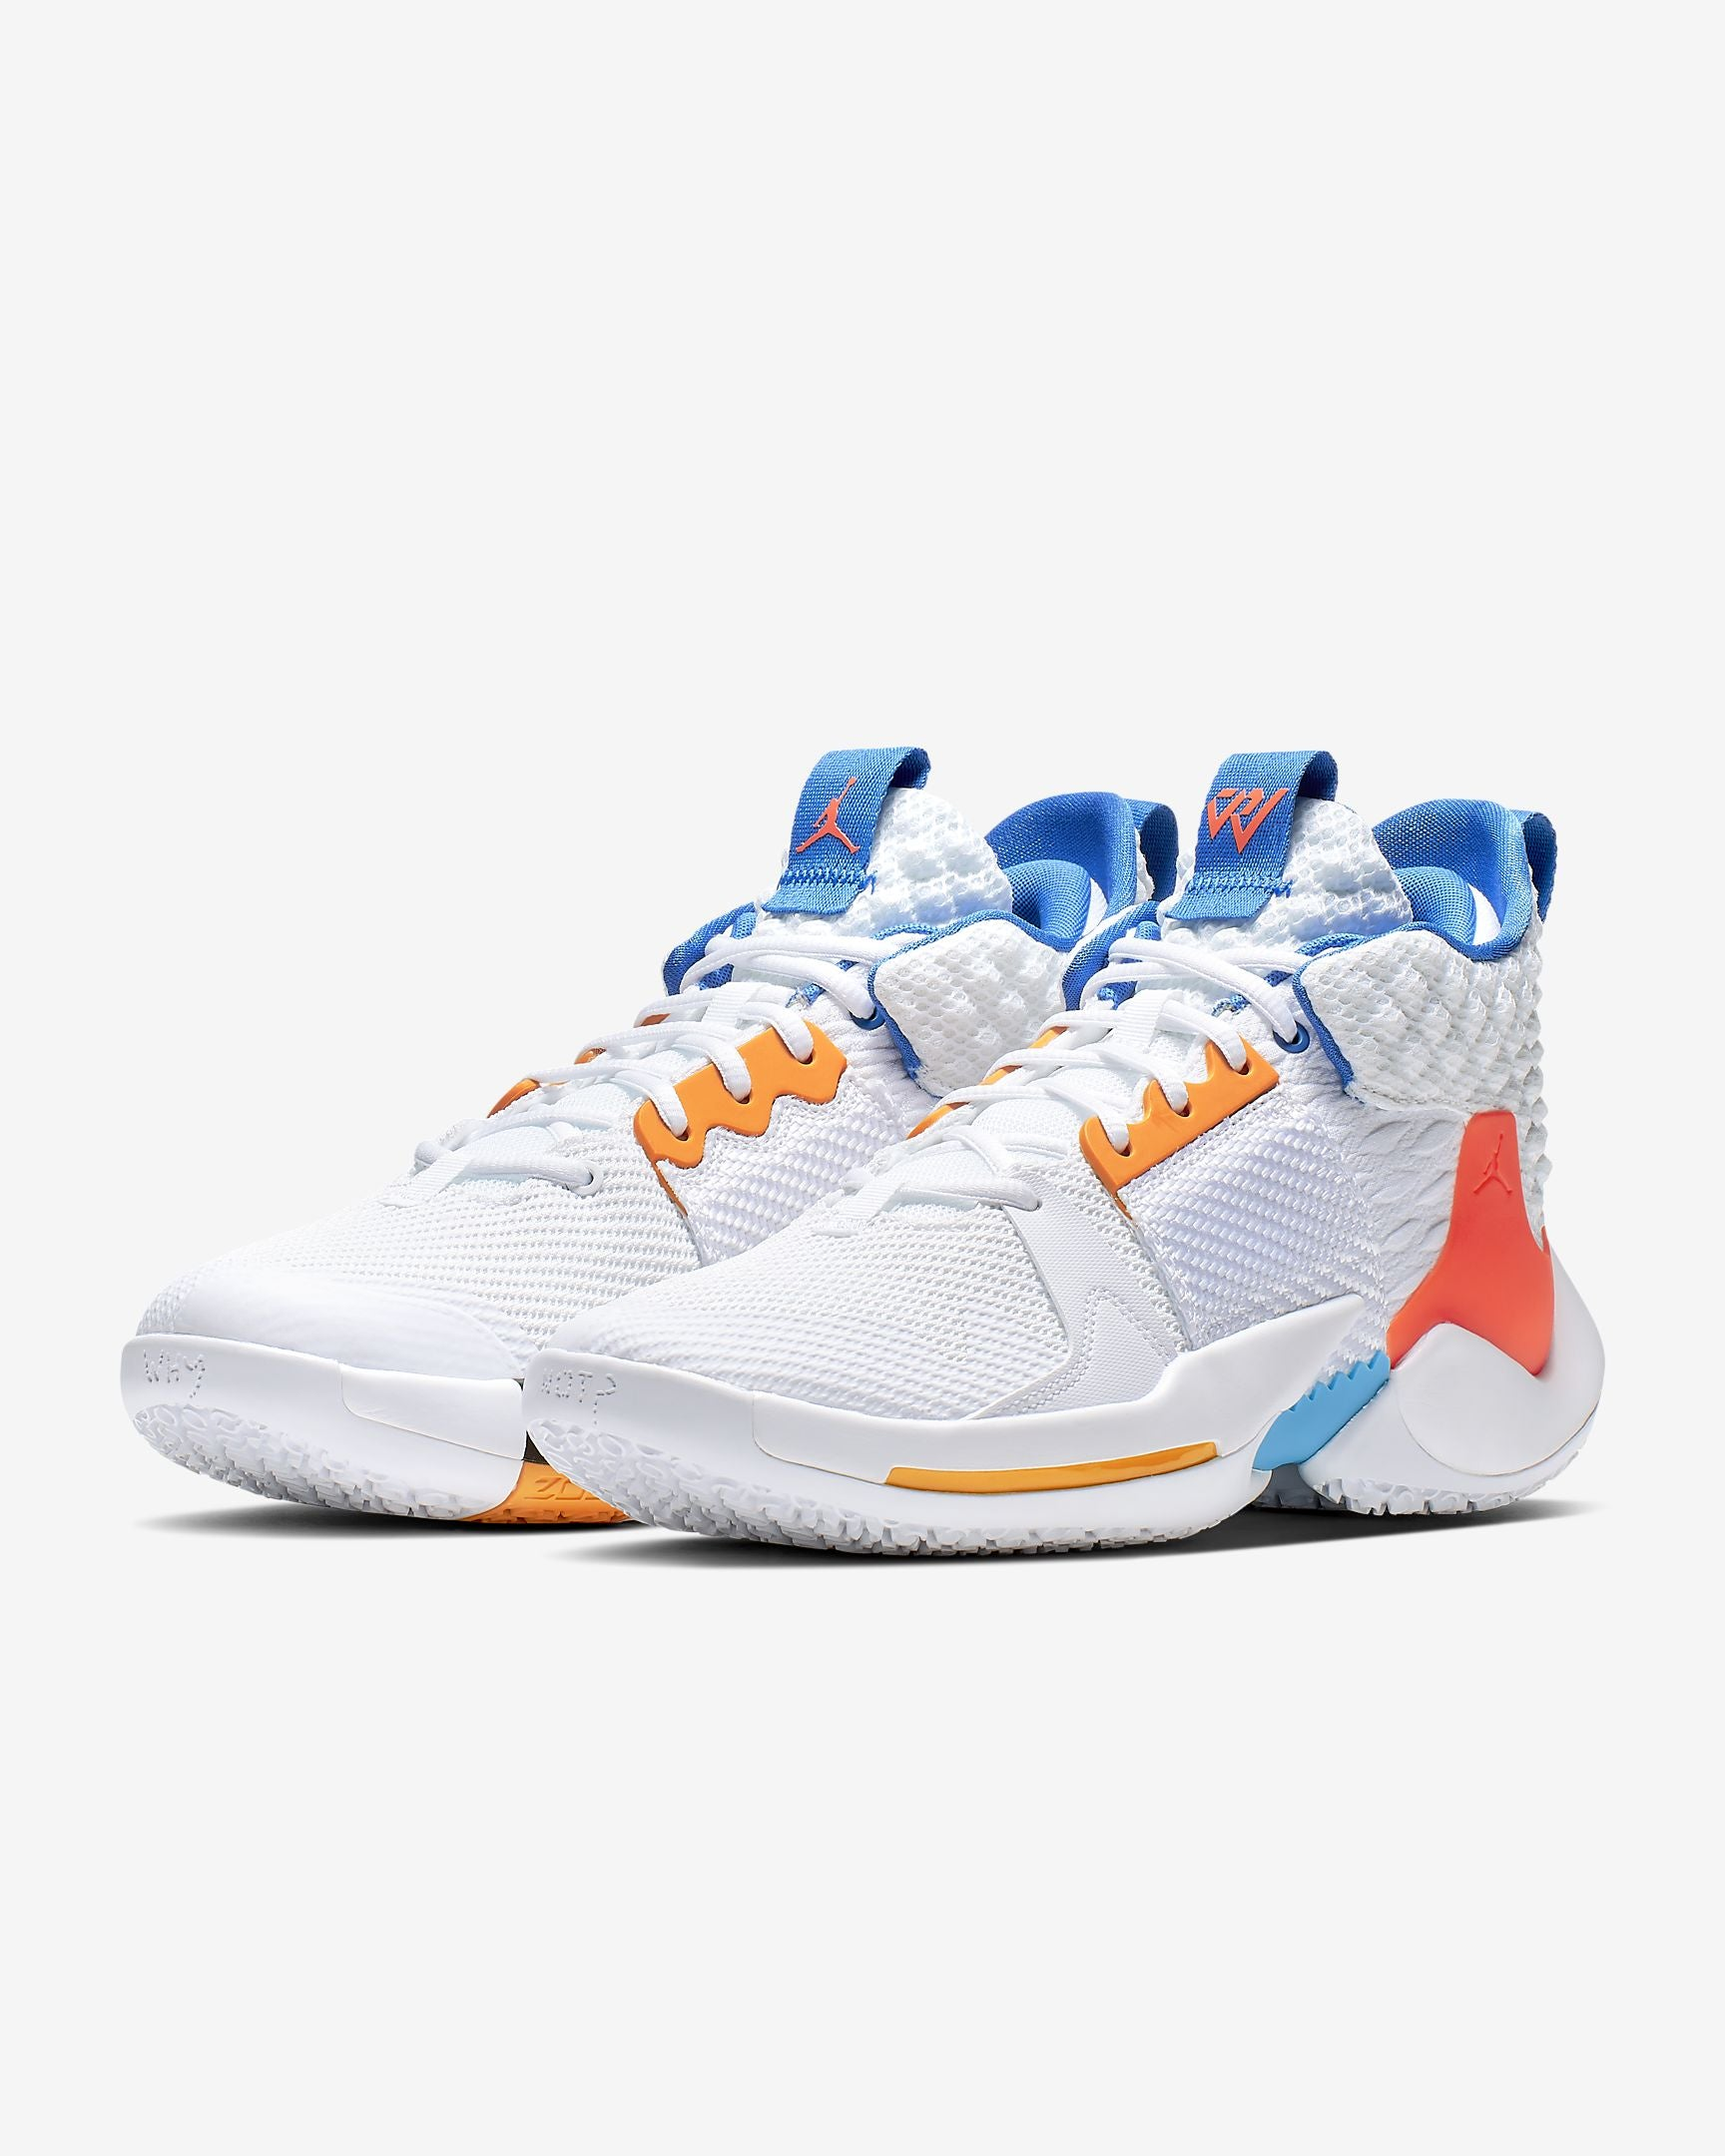 Nike Jordan Why Not Zer0.2 Basketball Boot/Shoe - White/Total Crimson/Blue Lagoon